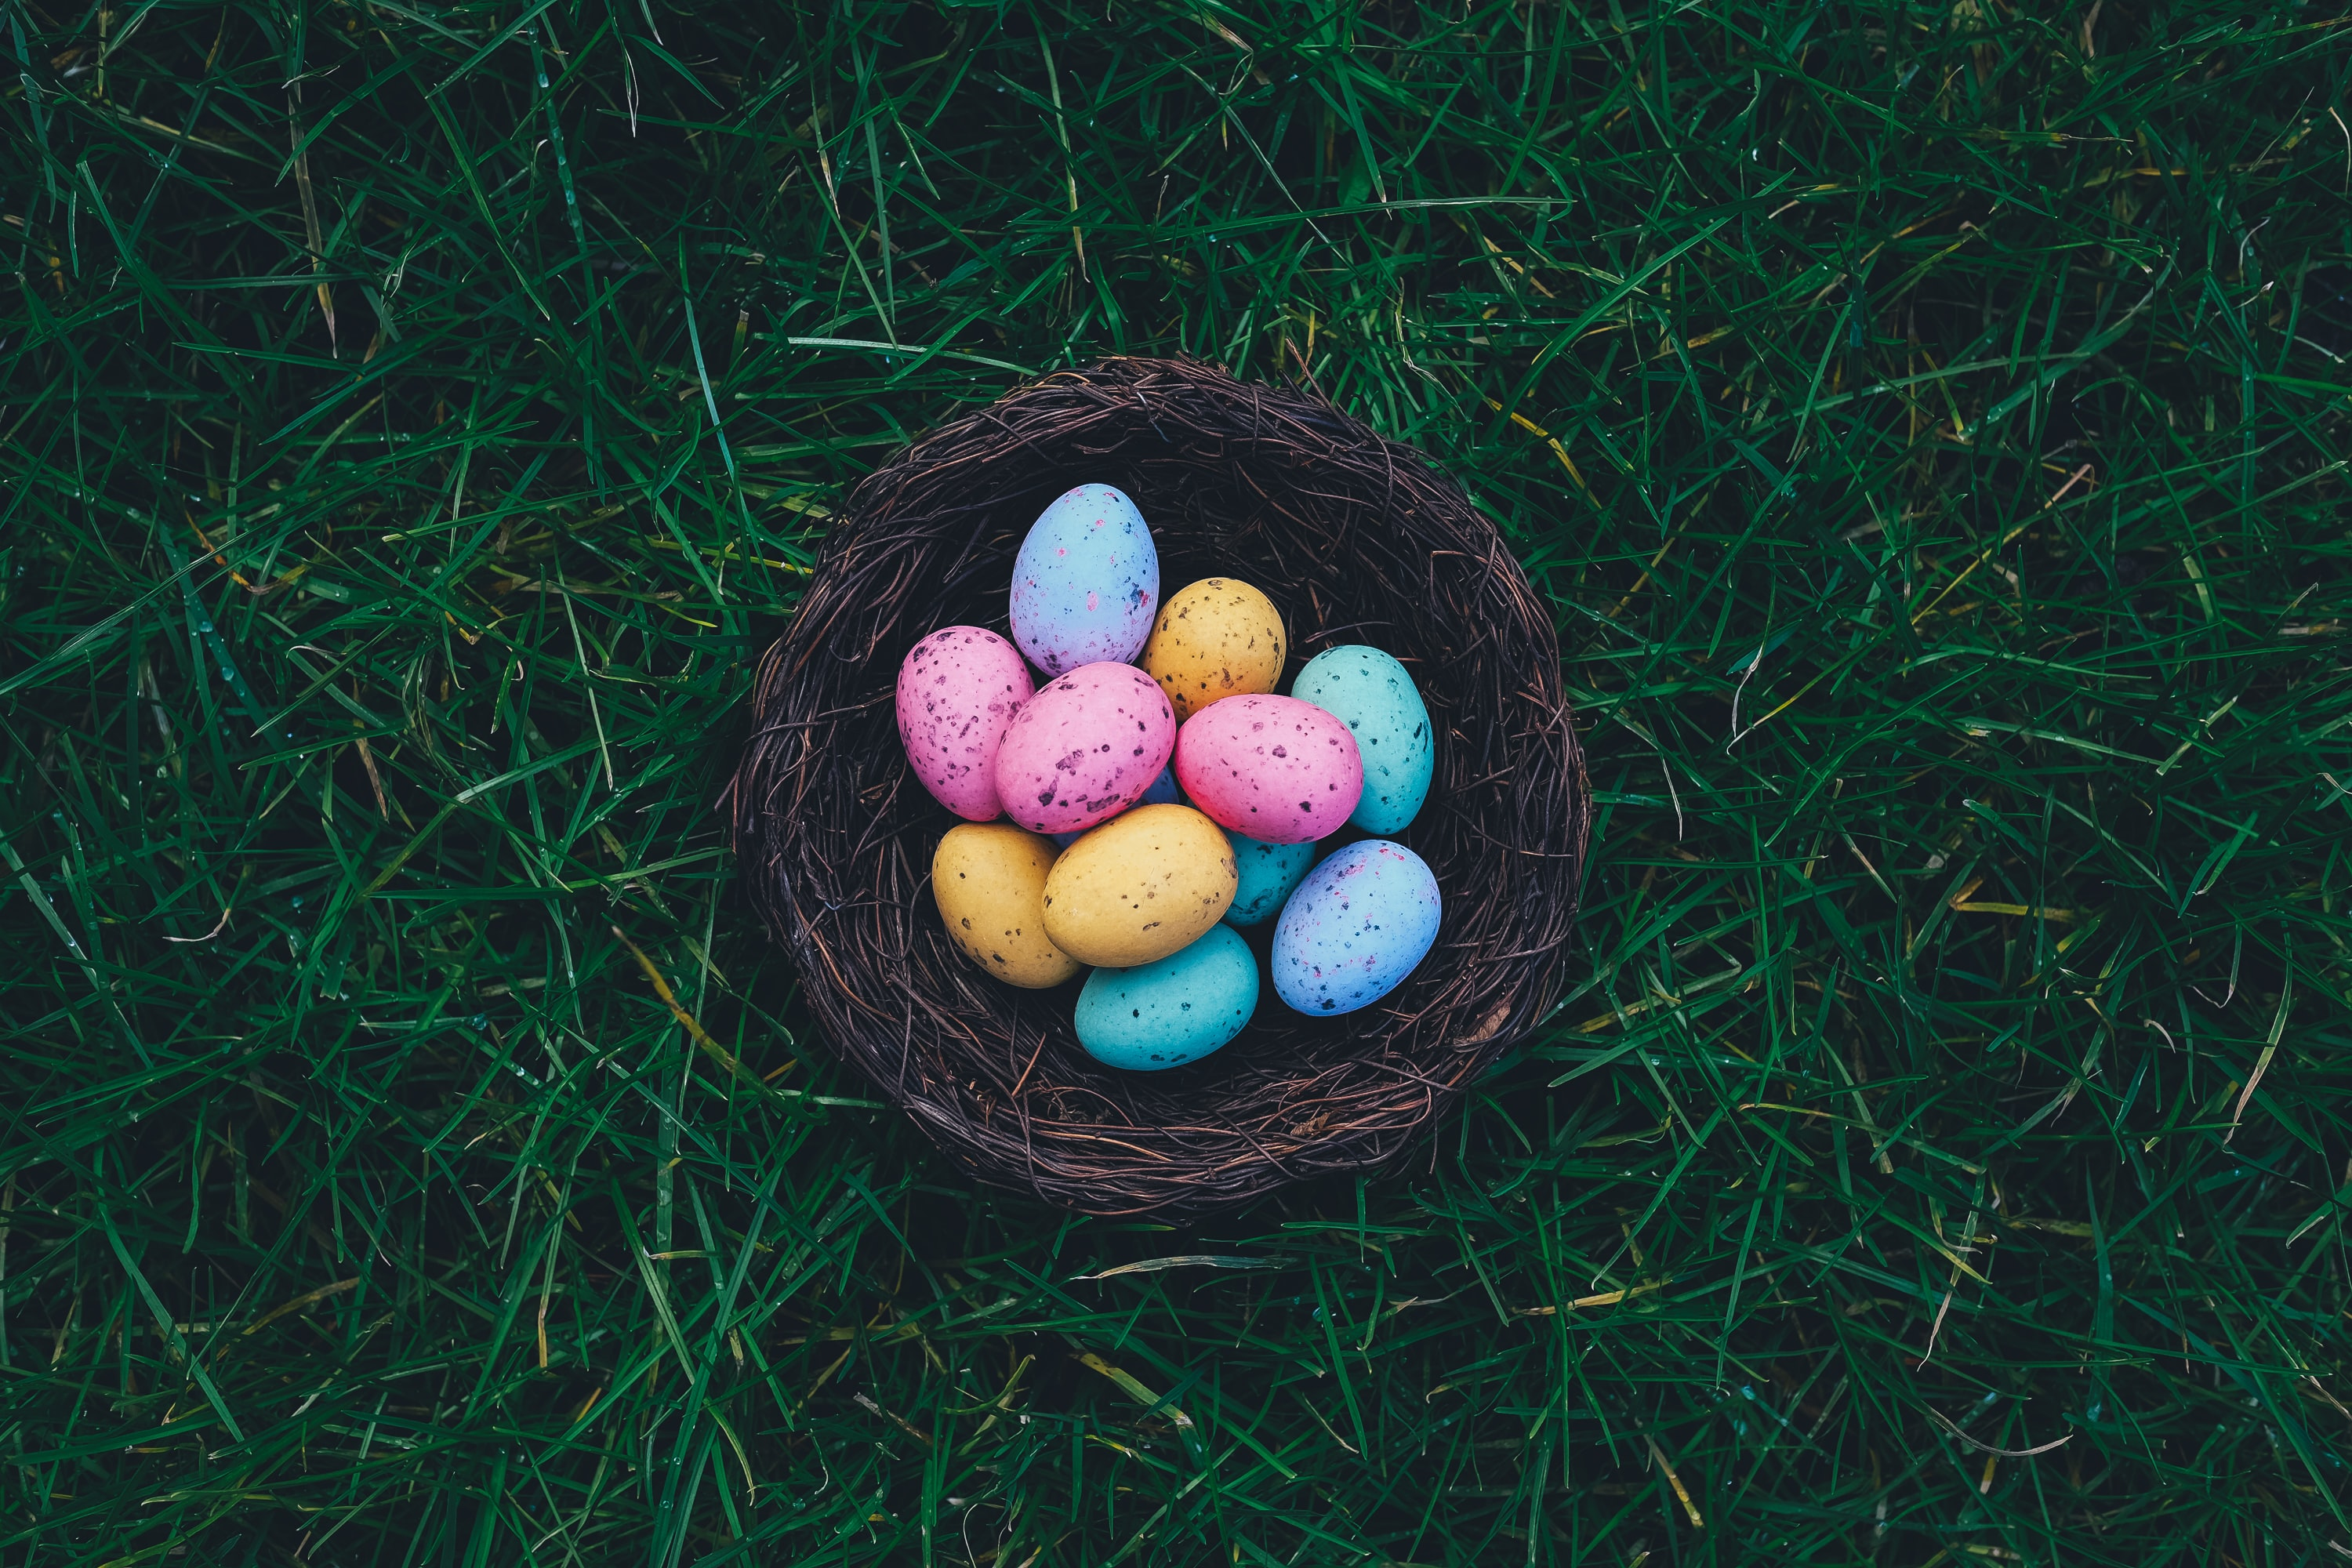 Multicolored speckled Easter eggs in a basket on grass